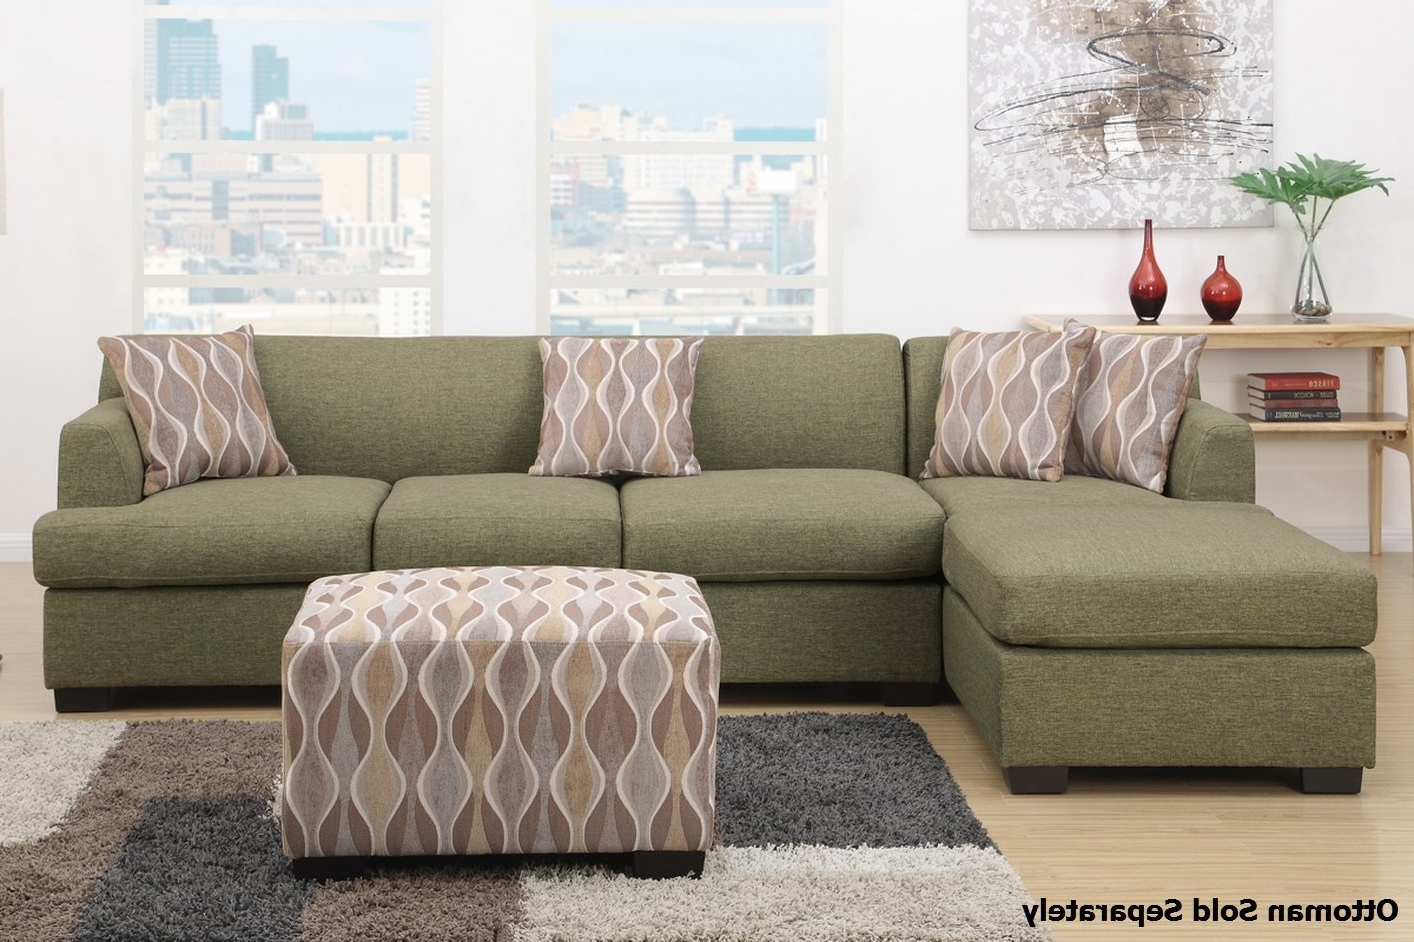 Montreal Iii Green Fabric Sectional Sofa – Steal A Sofa Furniture With Regard To Recent Green Sectional Sofas (View 13 of 20)